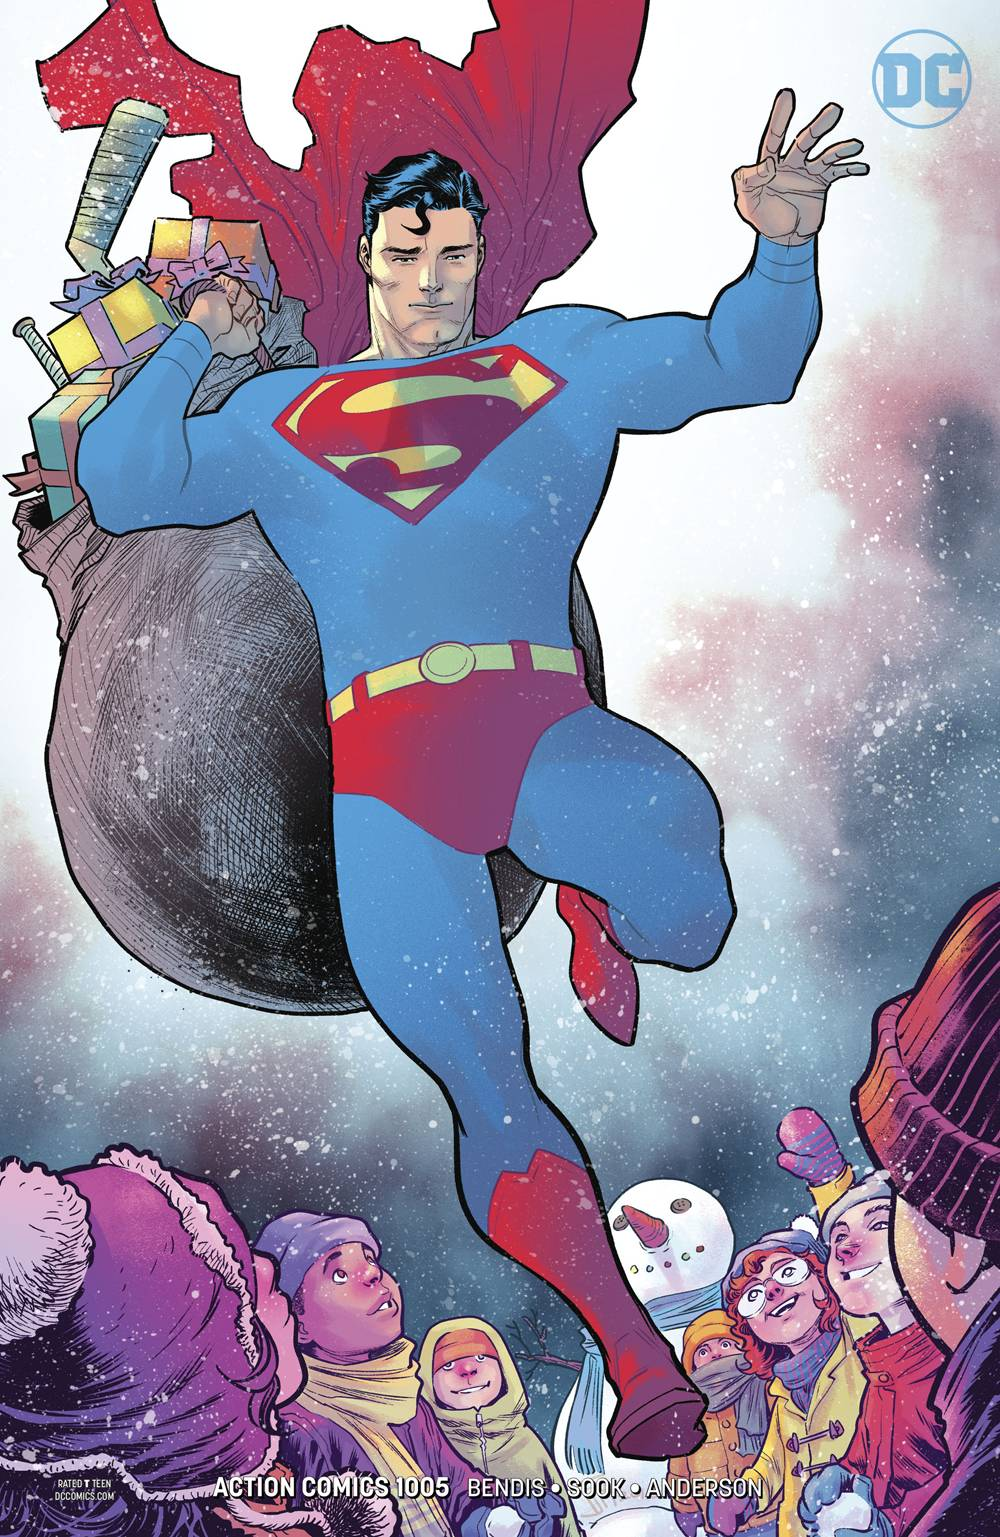 ACTION COMICS 1005 VAR ED.jpg